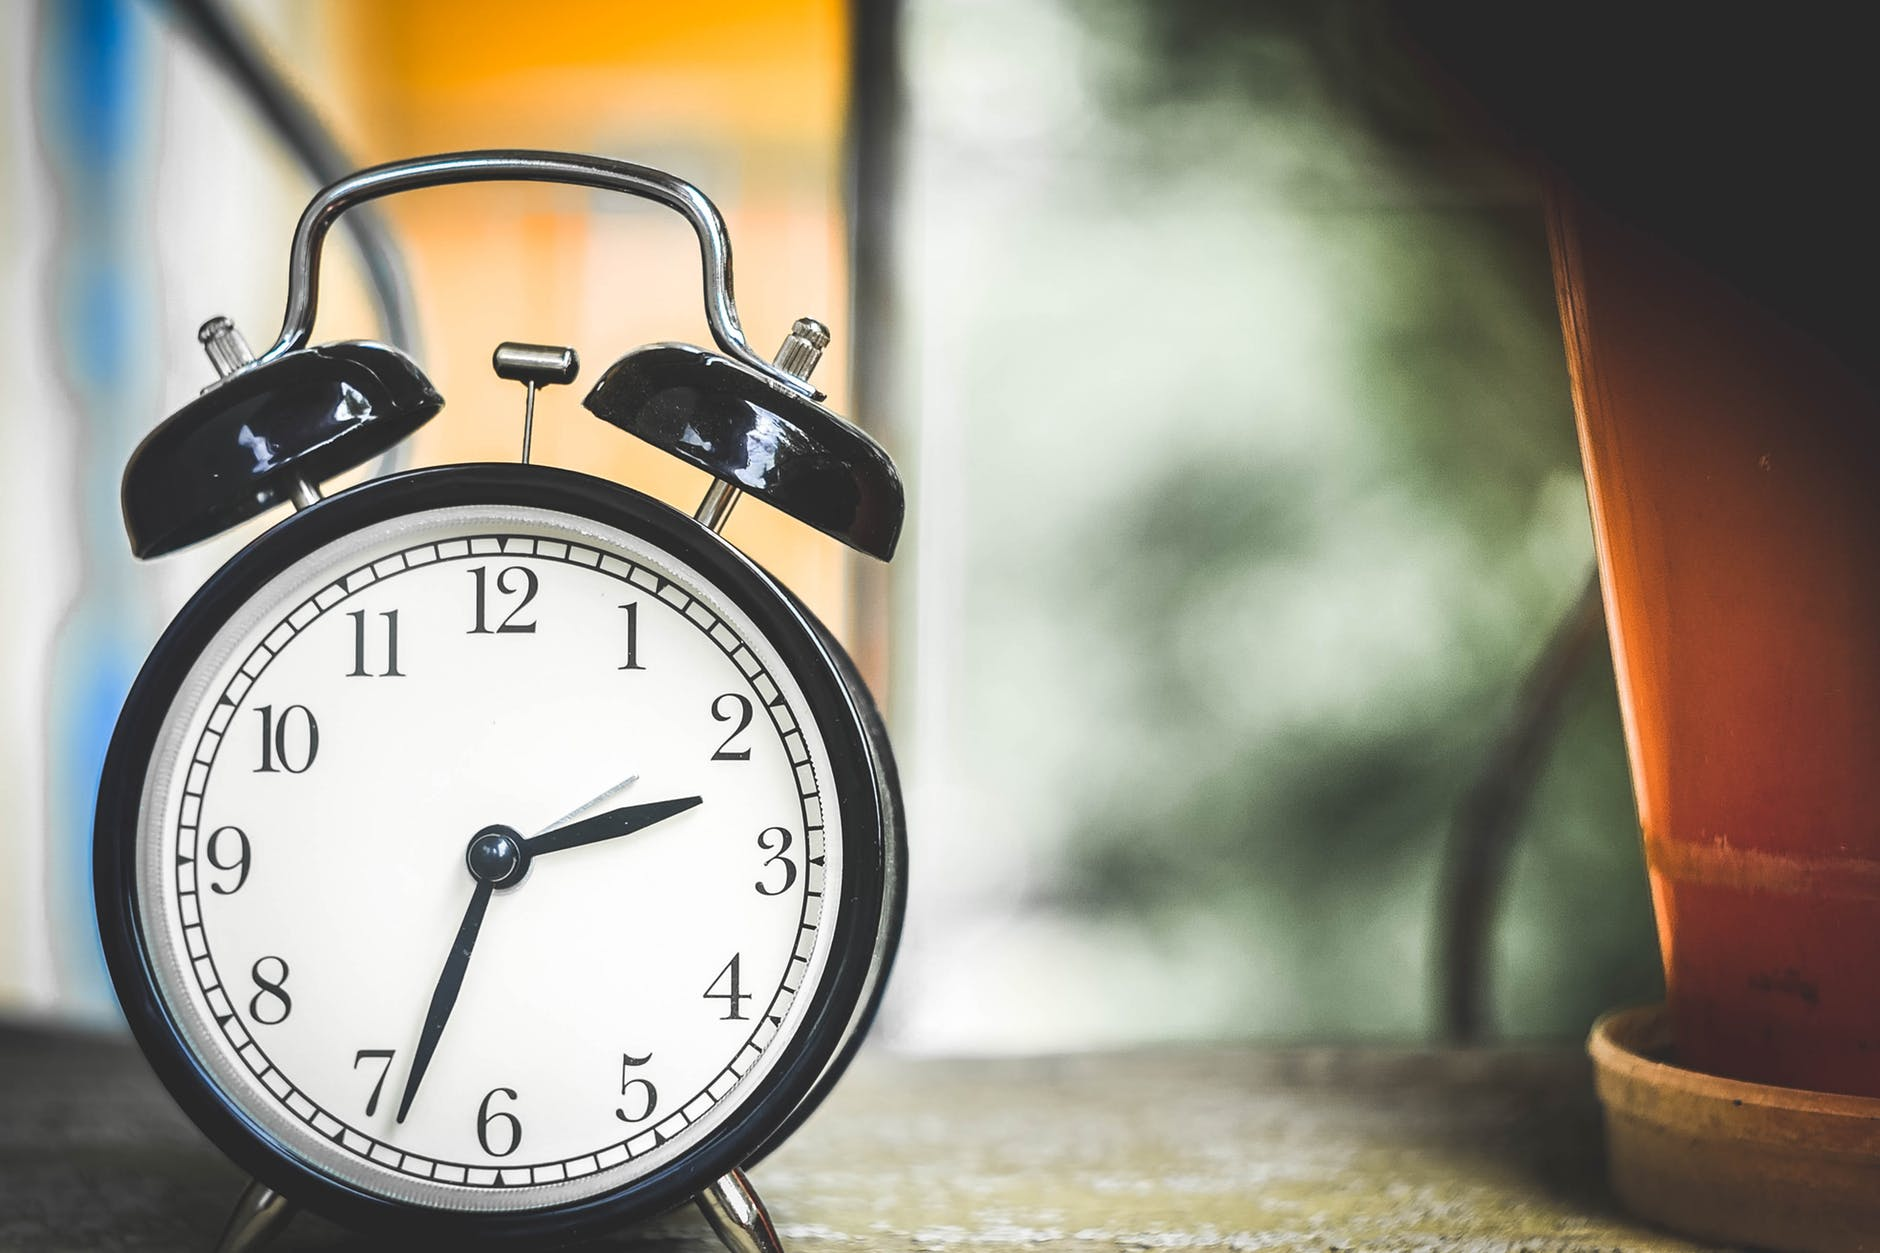 Picture of an alarm clock, illustrating Bowman's Clock in marketing for IFAs